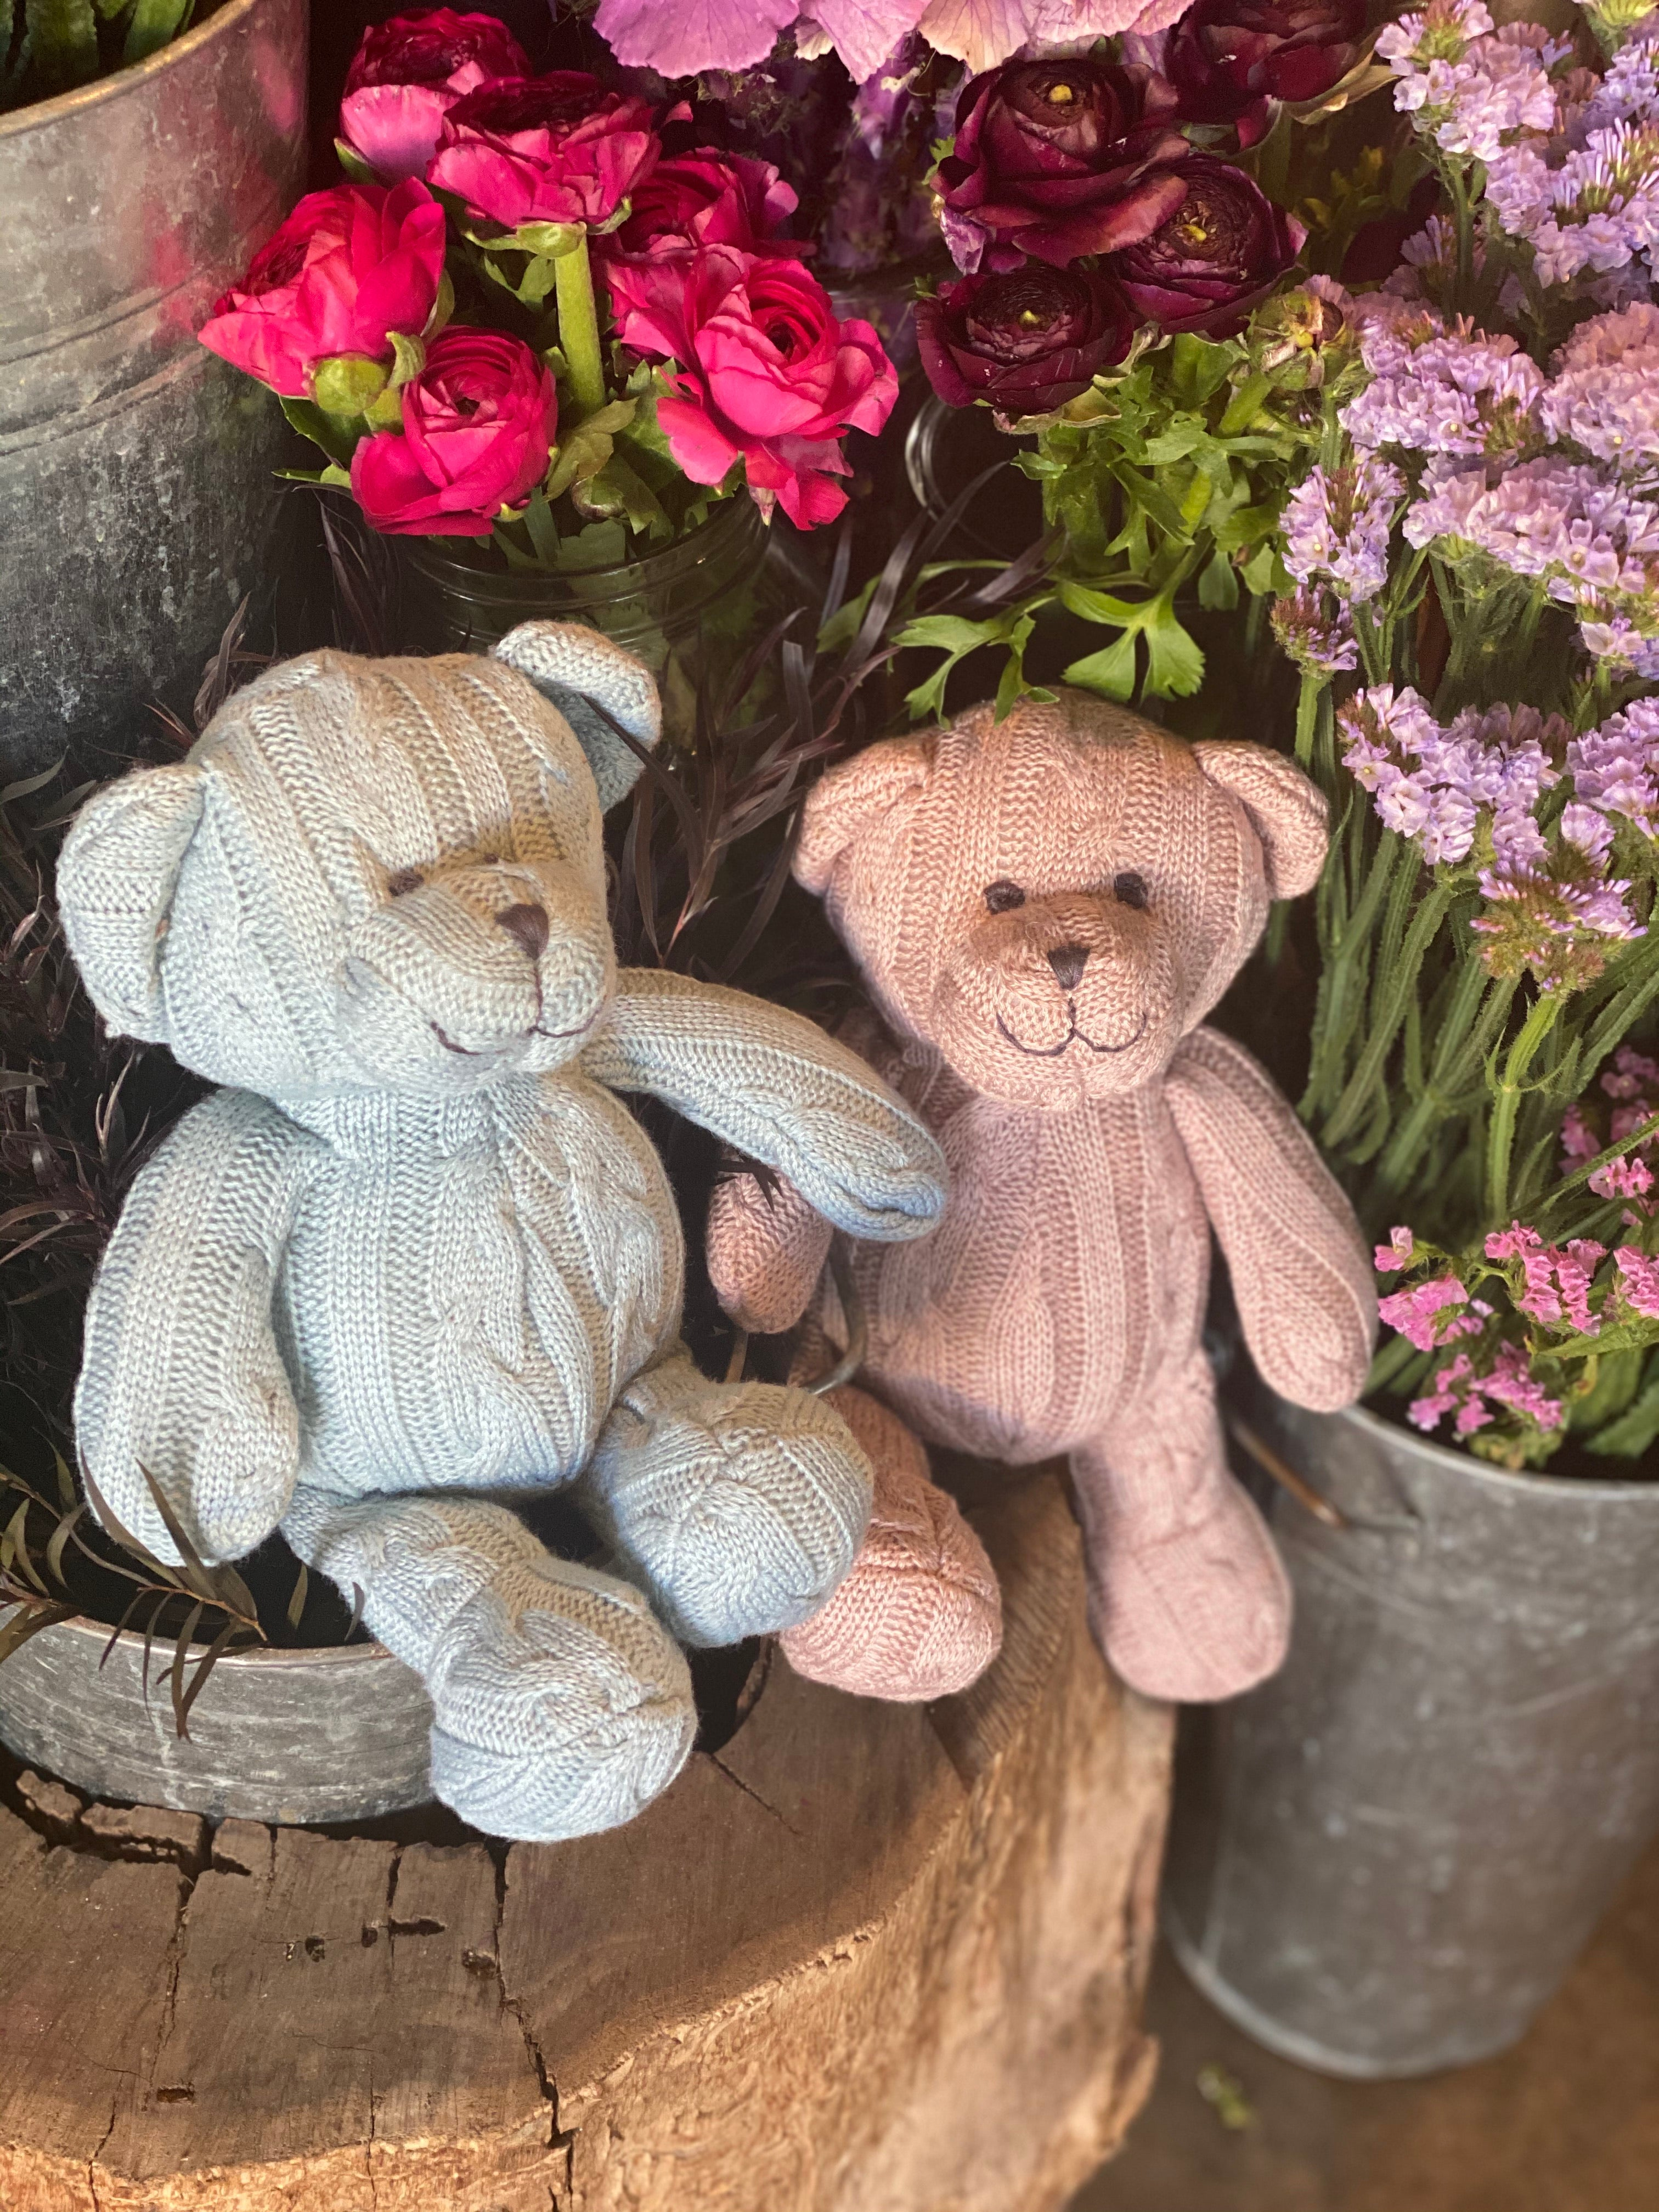 Cable Knit Teddies